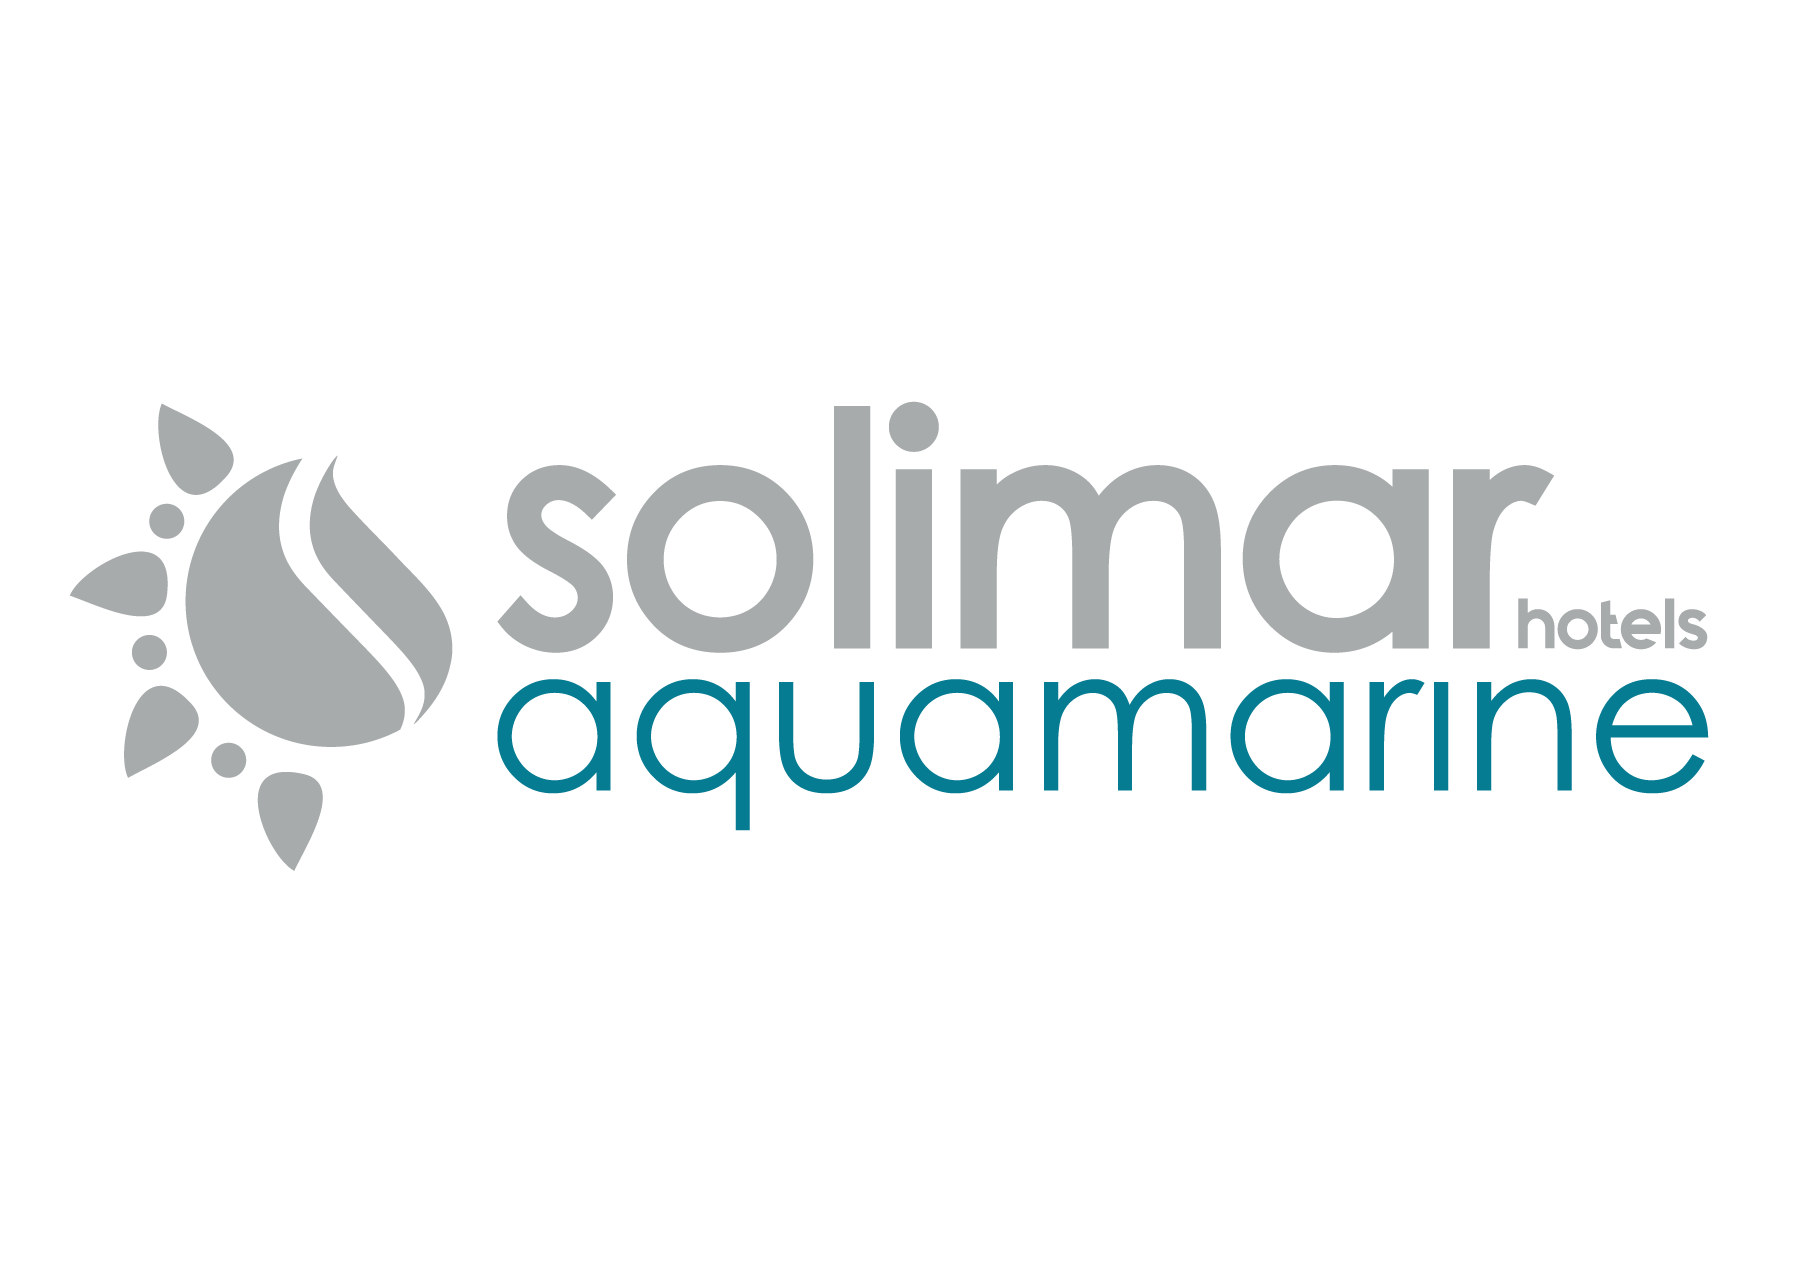 Solimar Hotels